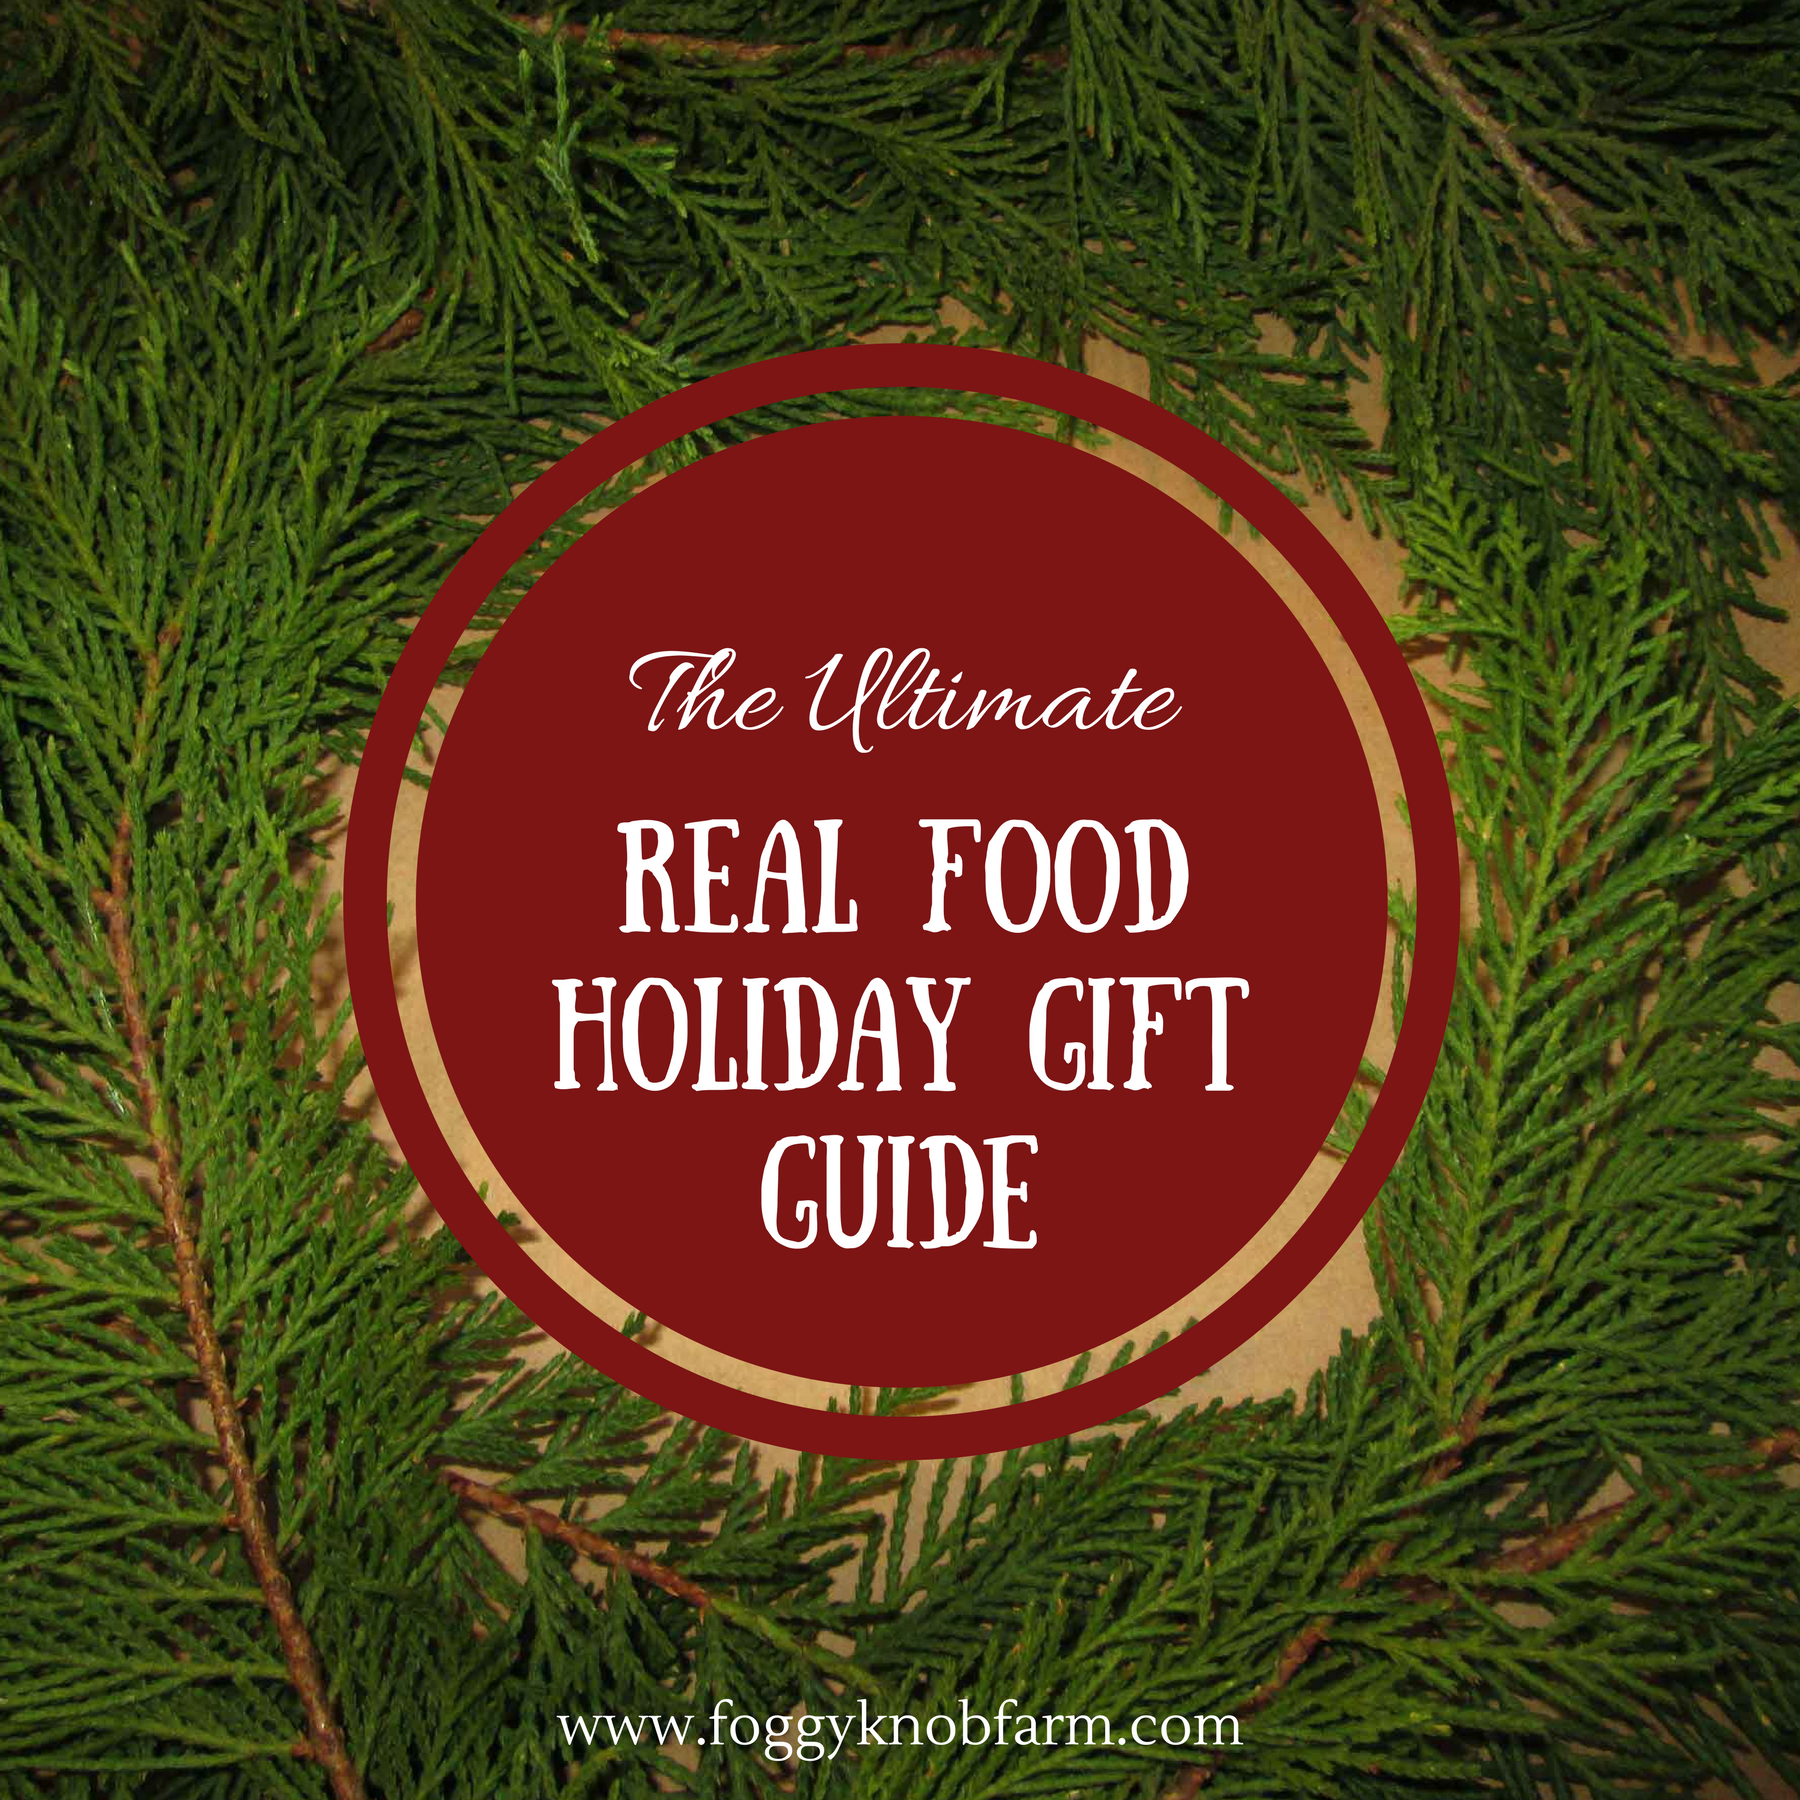 The Ultimate Real Food Holiday Gift Guide (FB).png